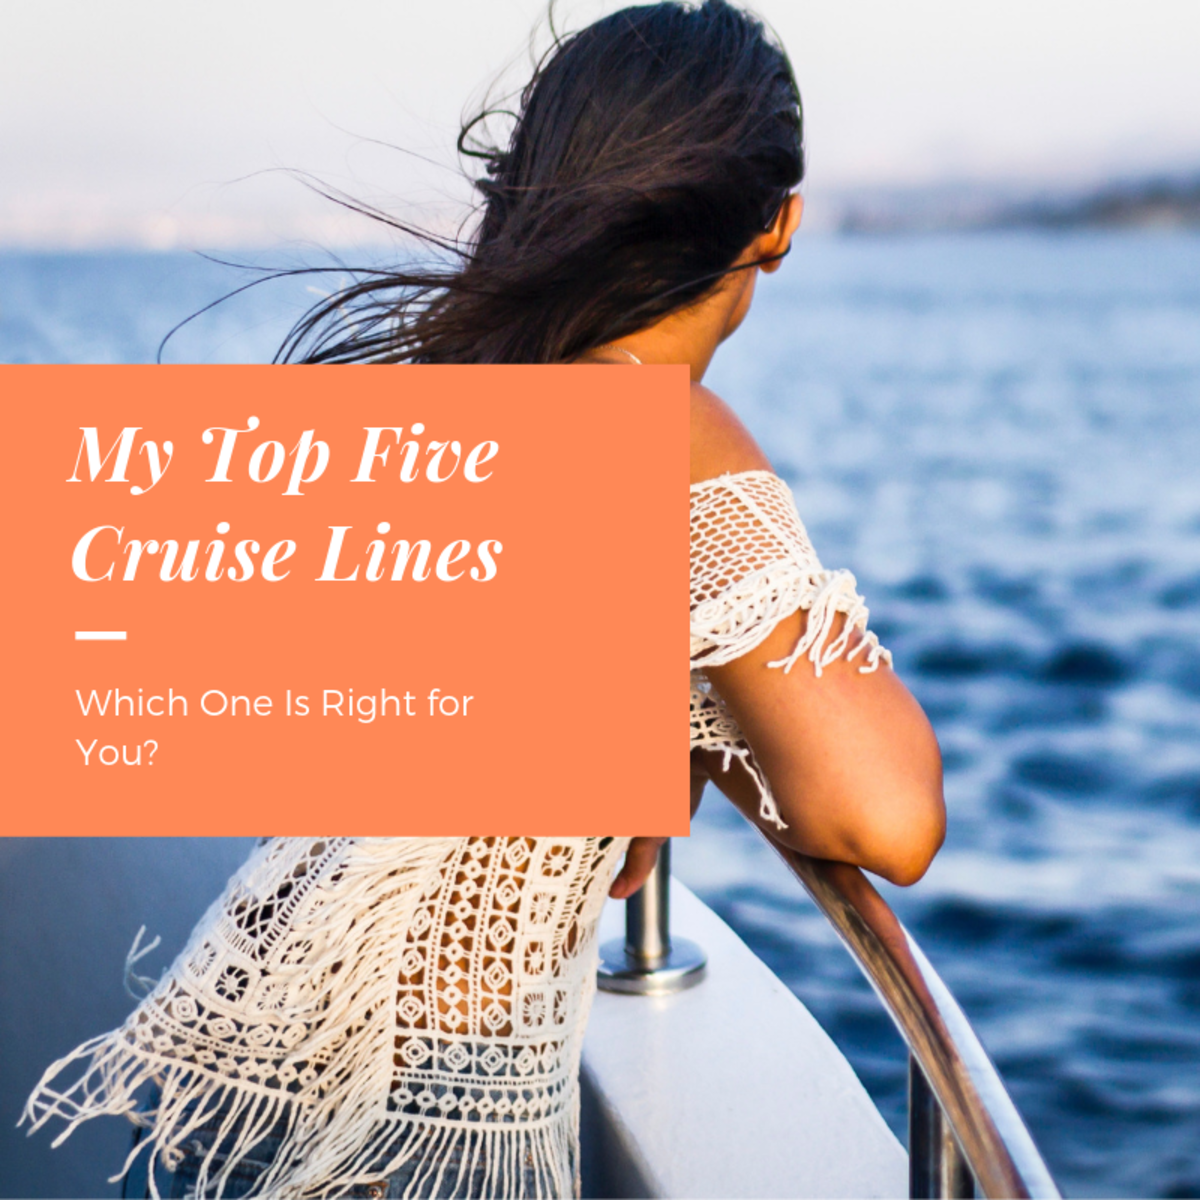 my-top-five-cruise-lines-which-one-is-right-for-you